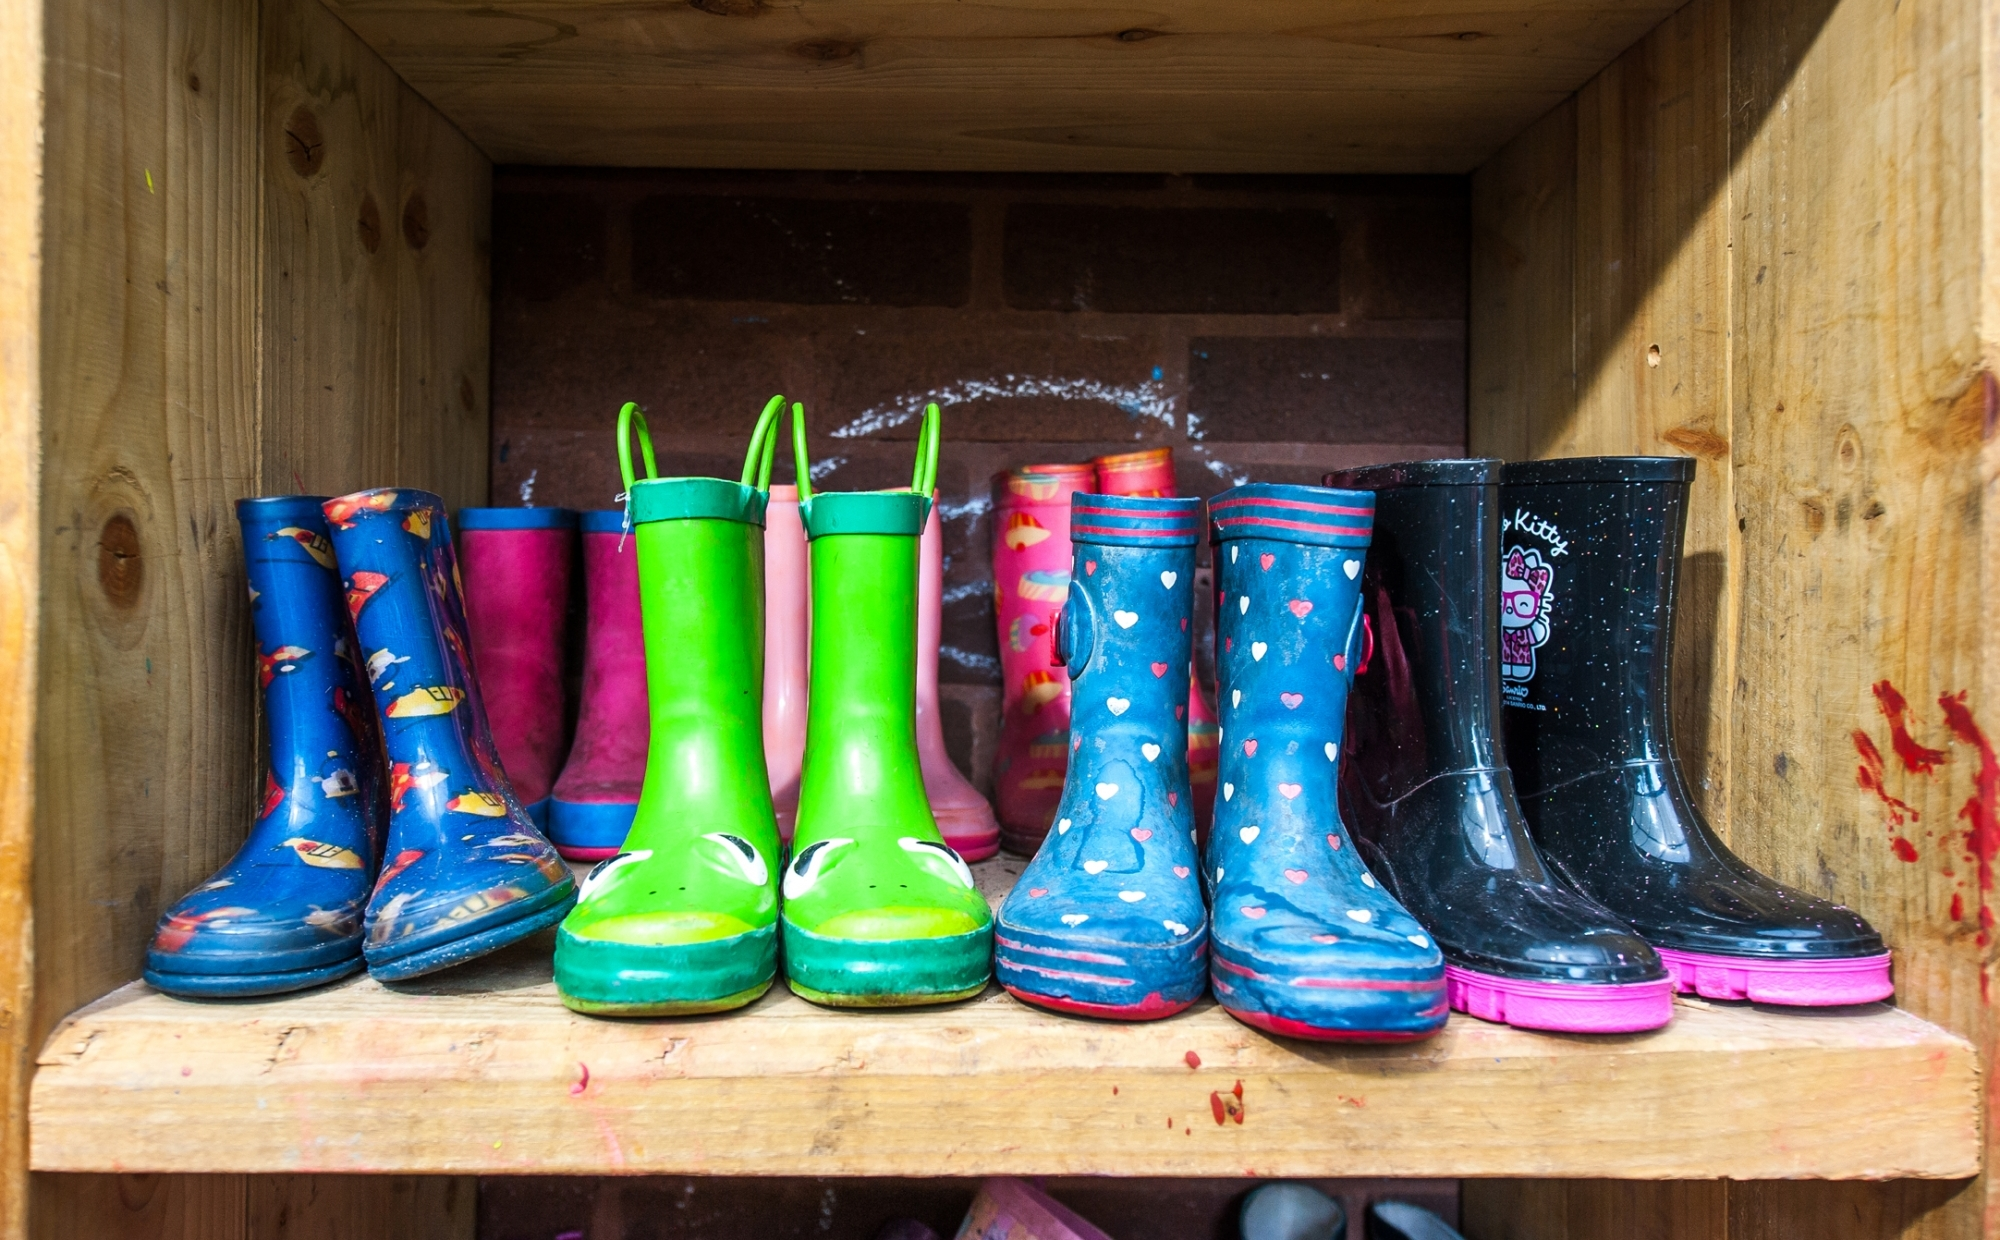 Wellington boots at St Philip's CE Primary School